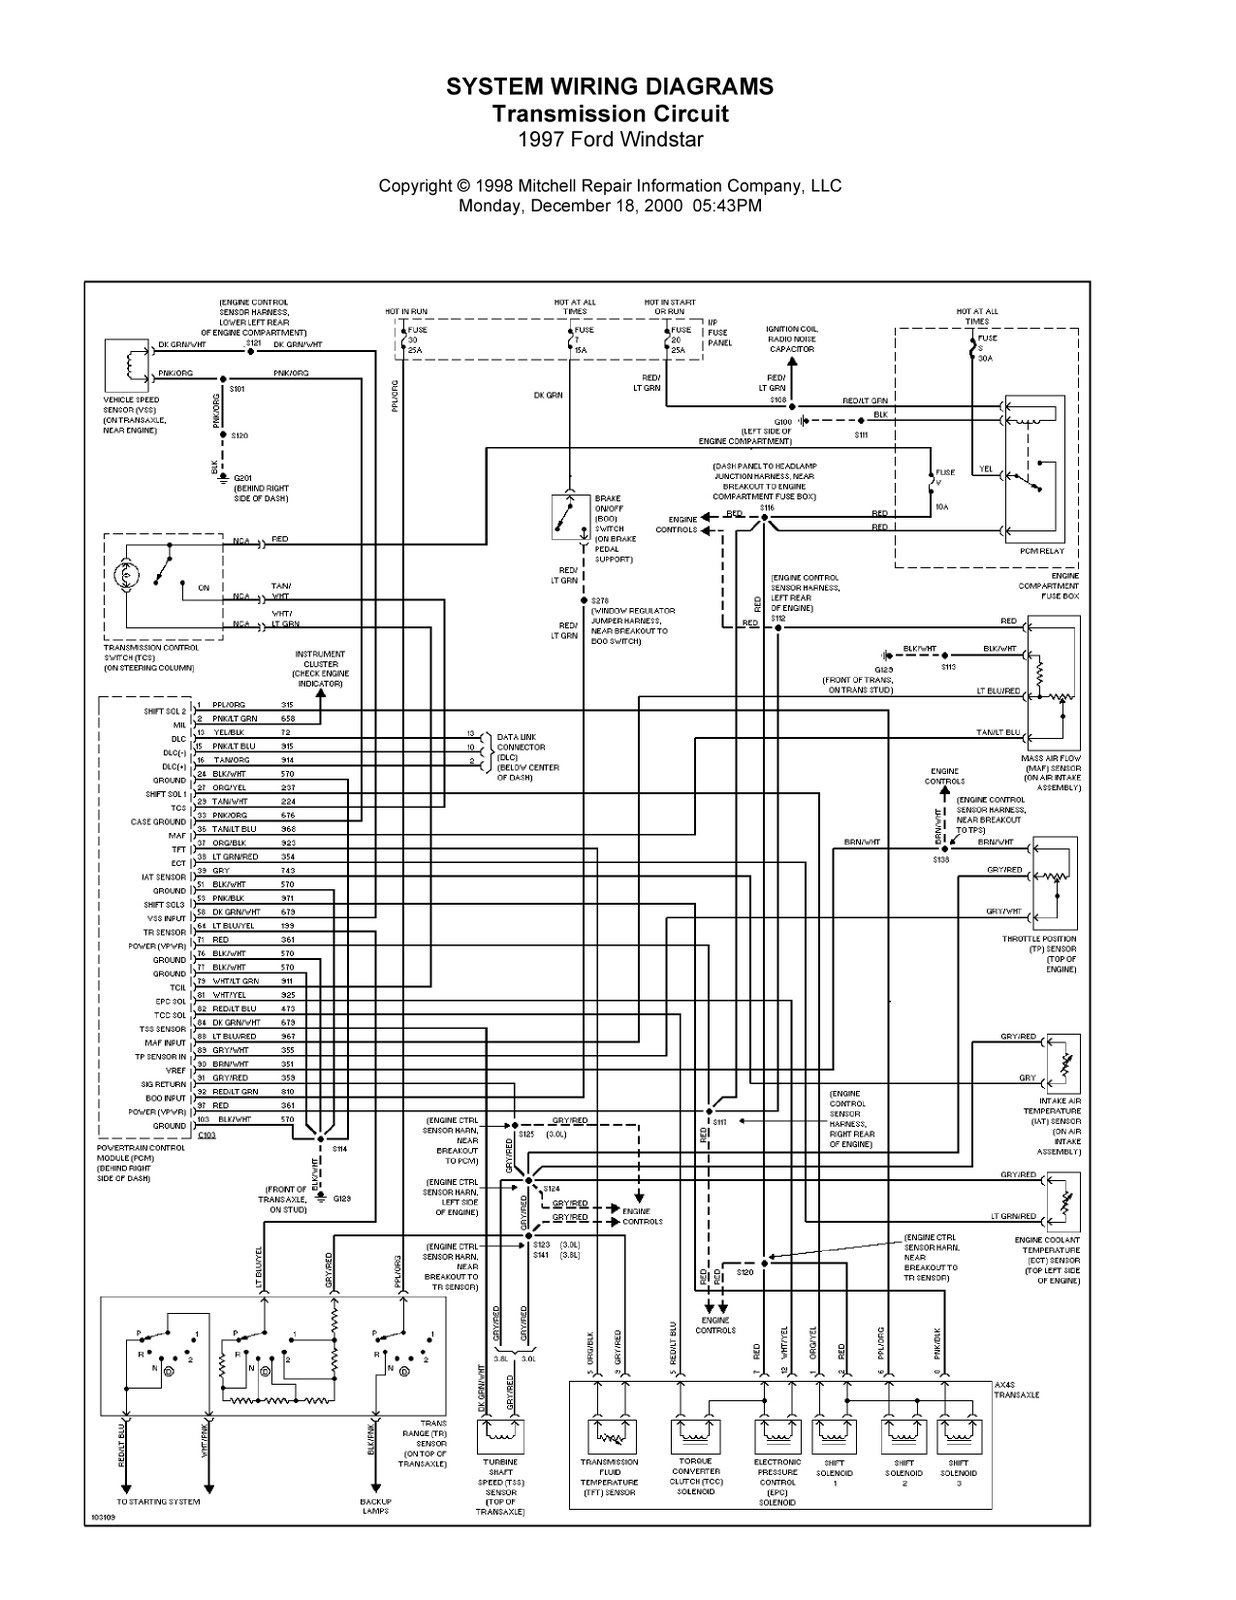 1997 Ford Windstar Complete System Wiring Diagrams Ml Radio Diagram Saturday May 28 2011 Herein The Schematic